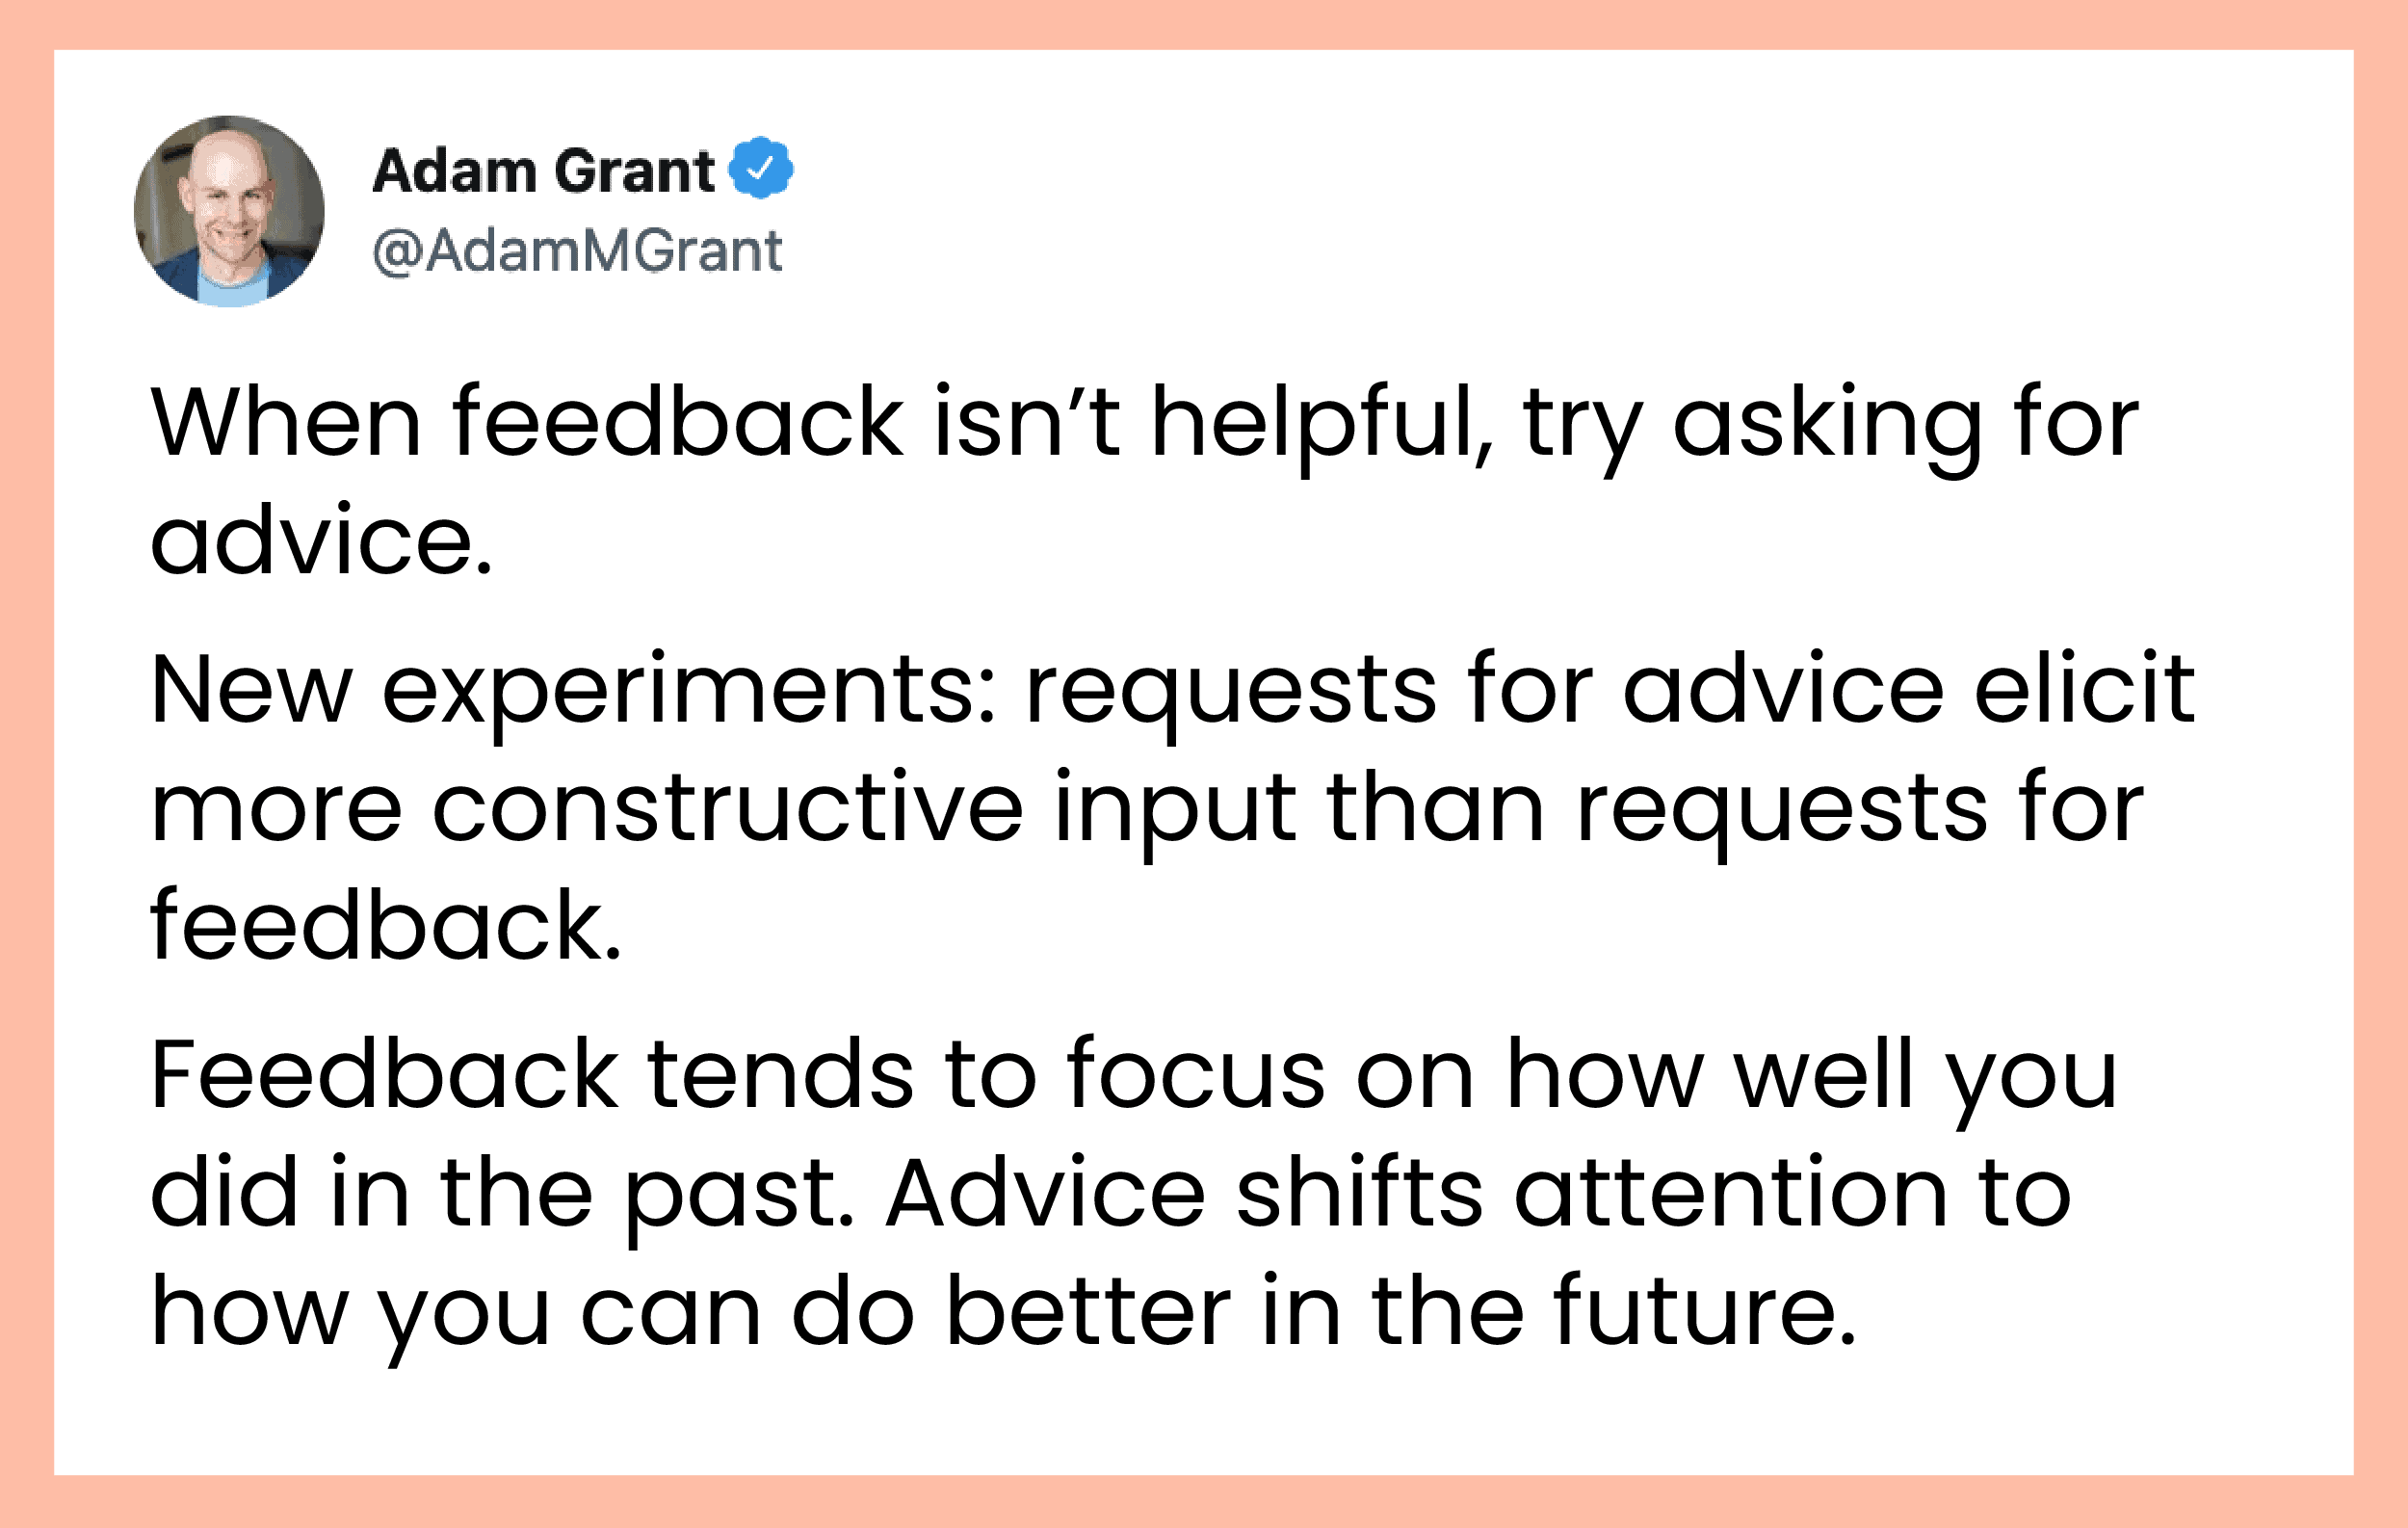 Tweet by Adam Grant on asking for feedback by asking for advice